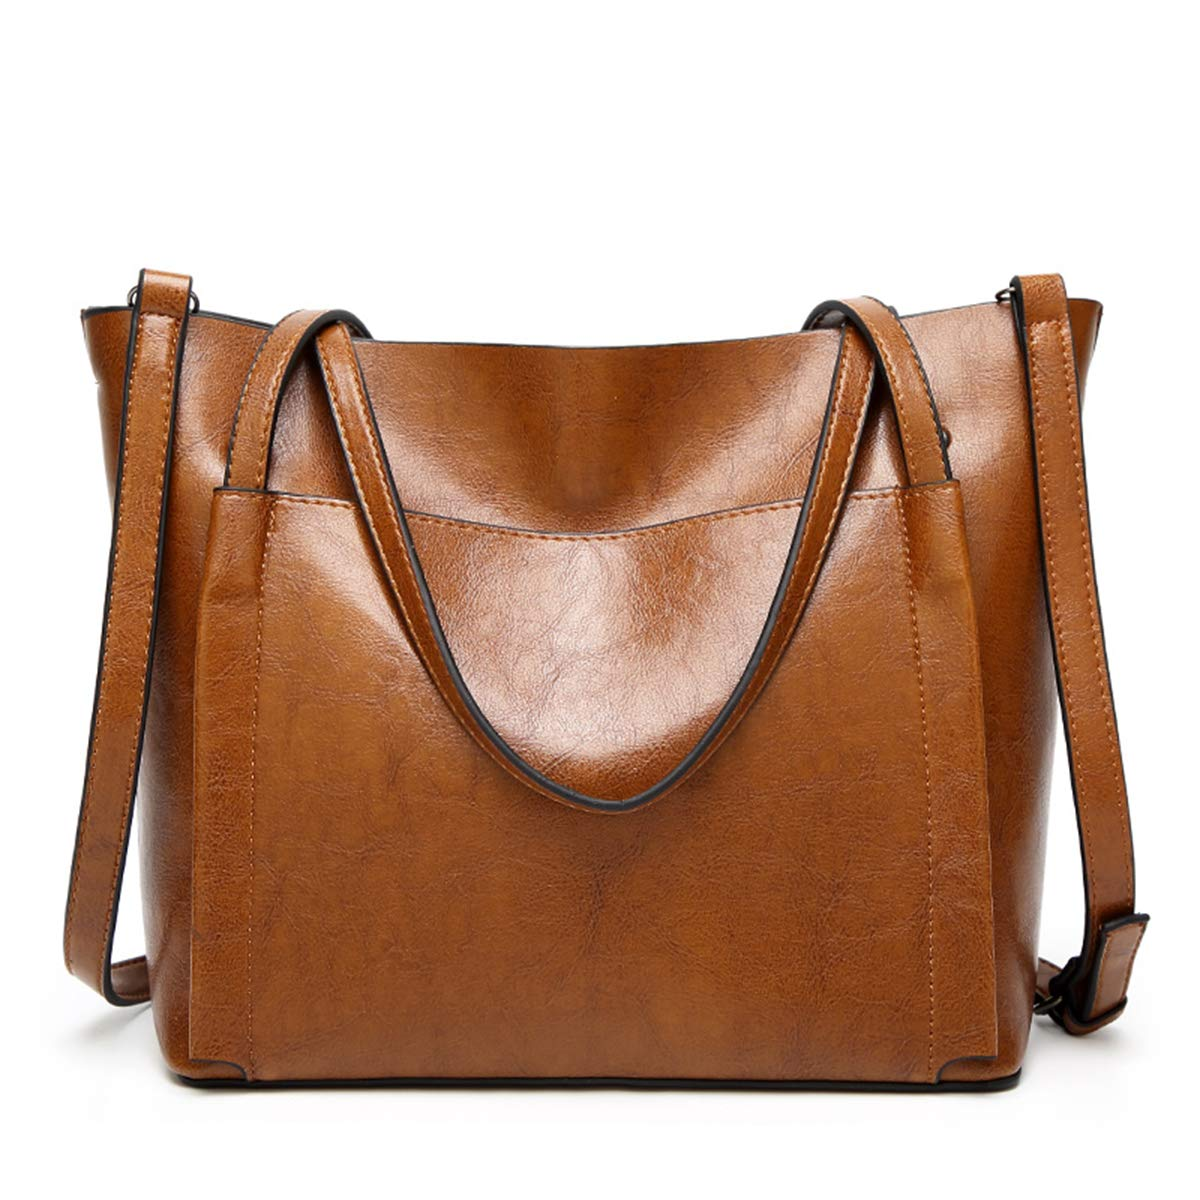 QIN LX Lady Leather Shopping Messenger Purse Top Handle Handbags Women's Shoulder Tote Satchel Bag (brown) by QIN LX (Image #1)